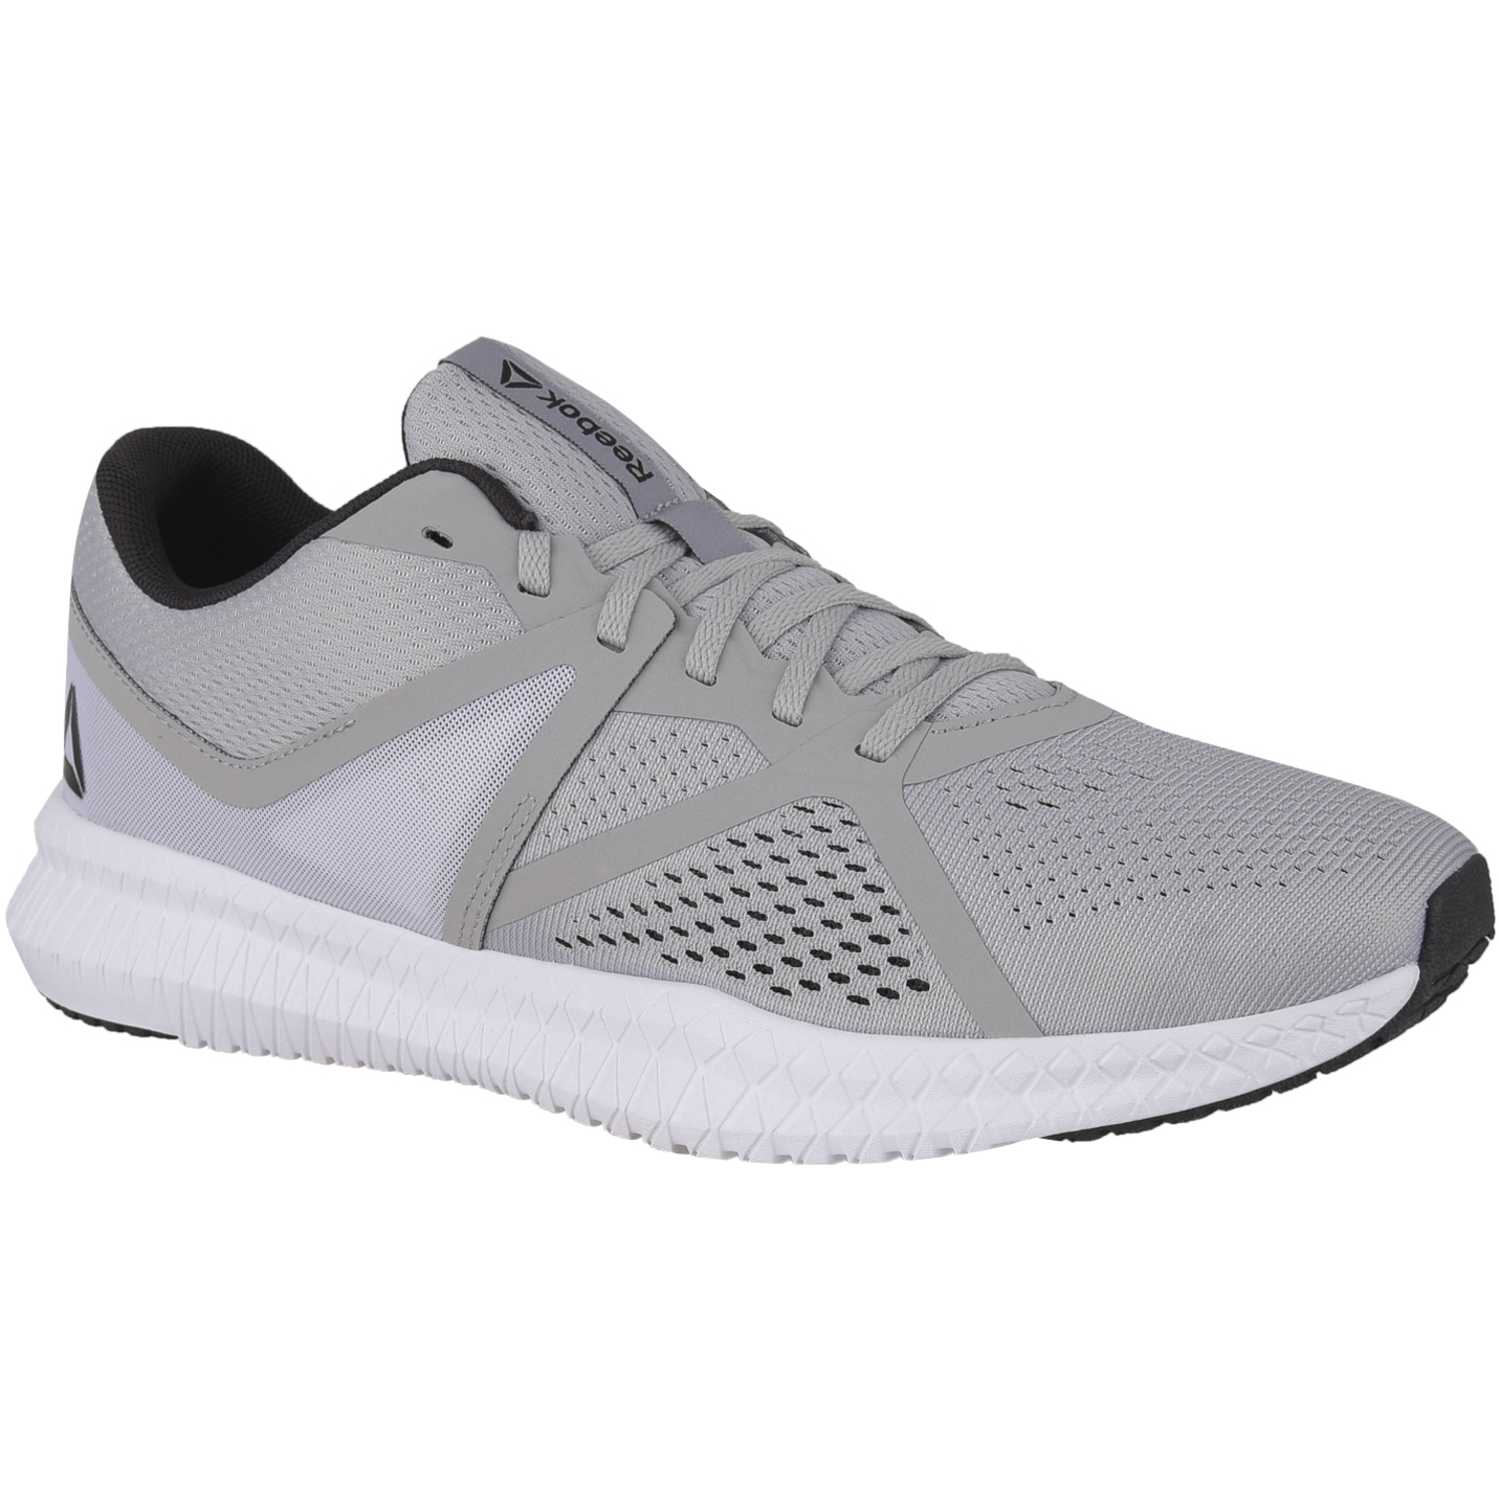 Reebok Reebok Flexagon Fit Gris / negro Hombres